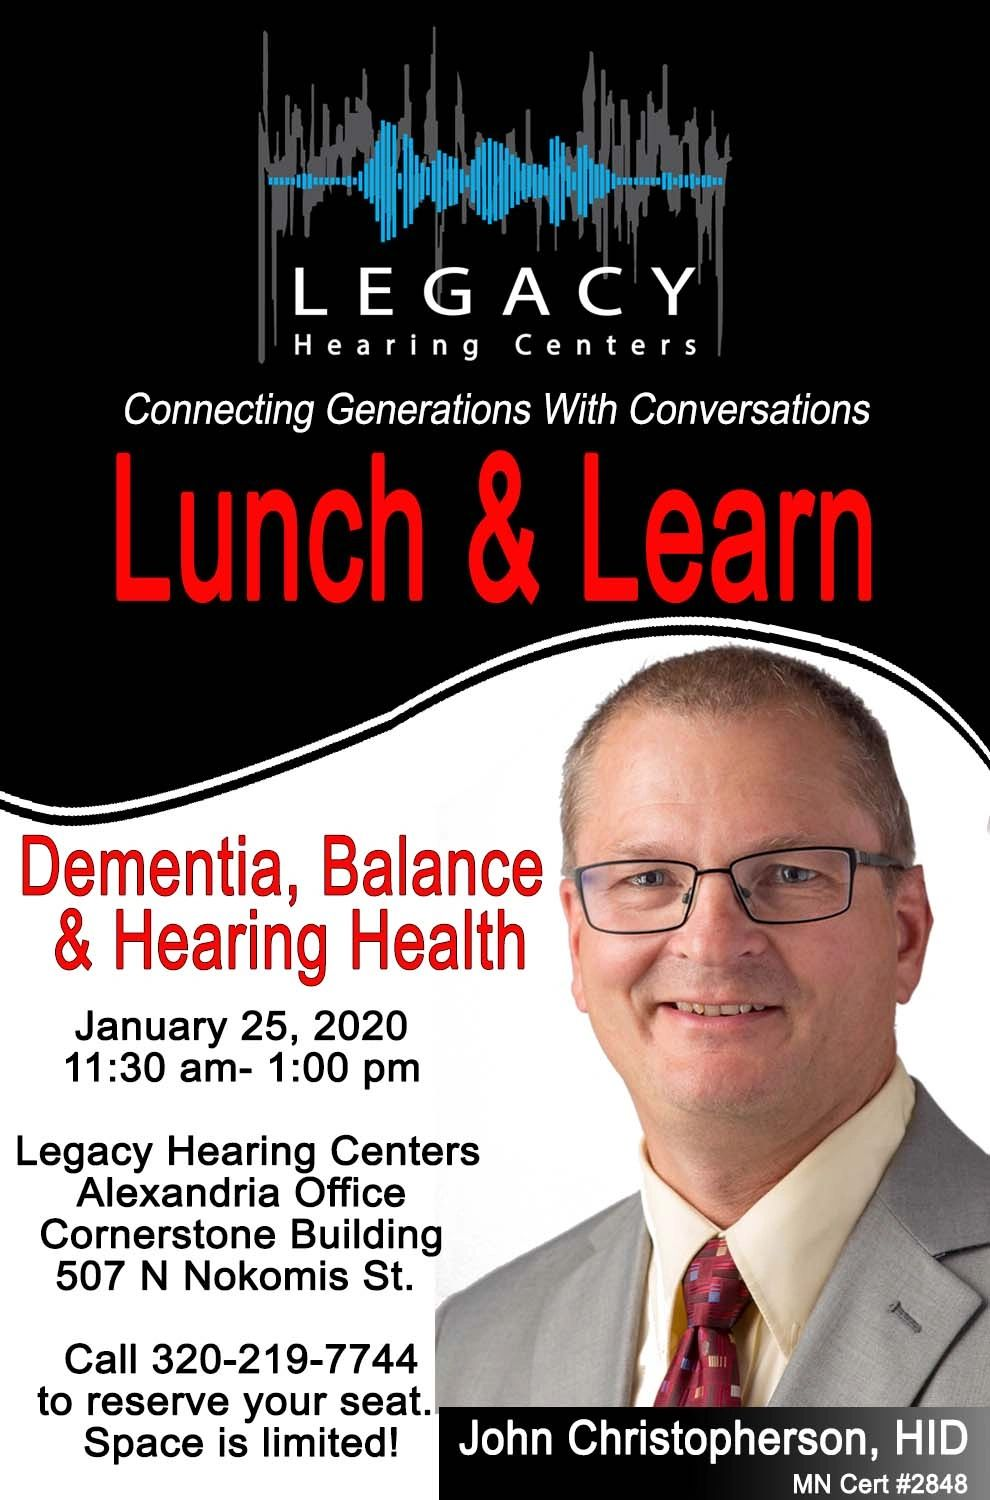 Lunch and Learn on Dementia, Balance, & Hearing 320.219.7744 to reserve seat.